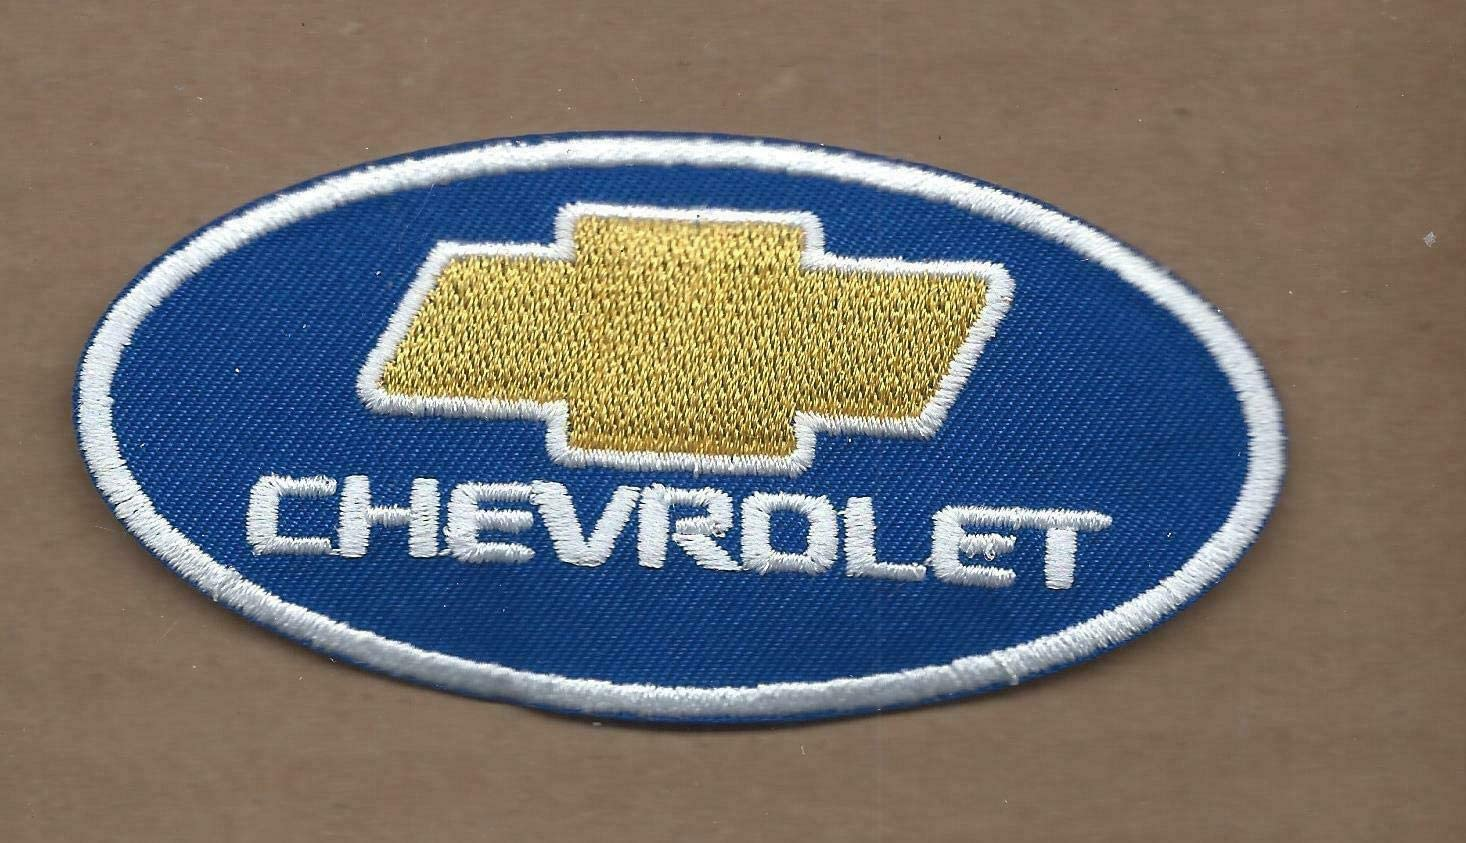 Corvette Iron on Patch Embroidered Patch Chevrolet Muscle Car Pony Car